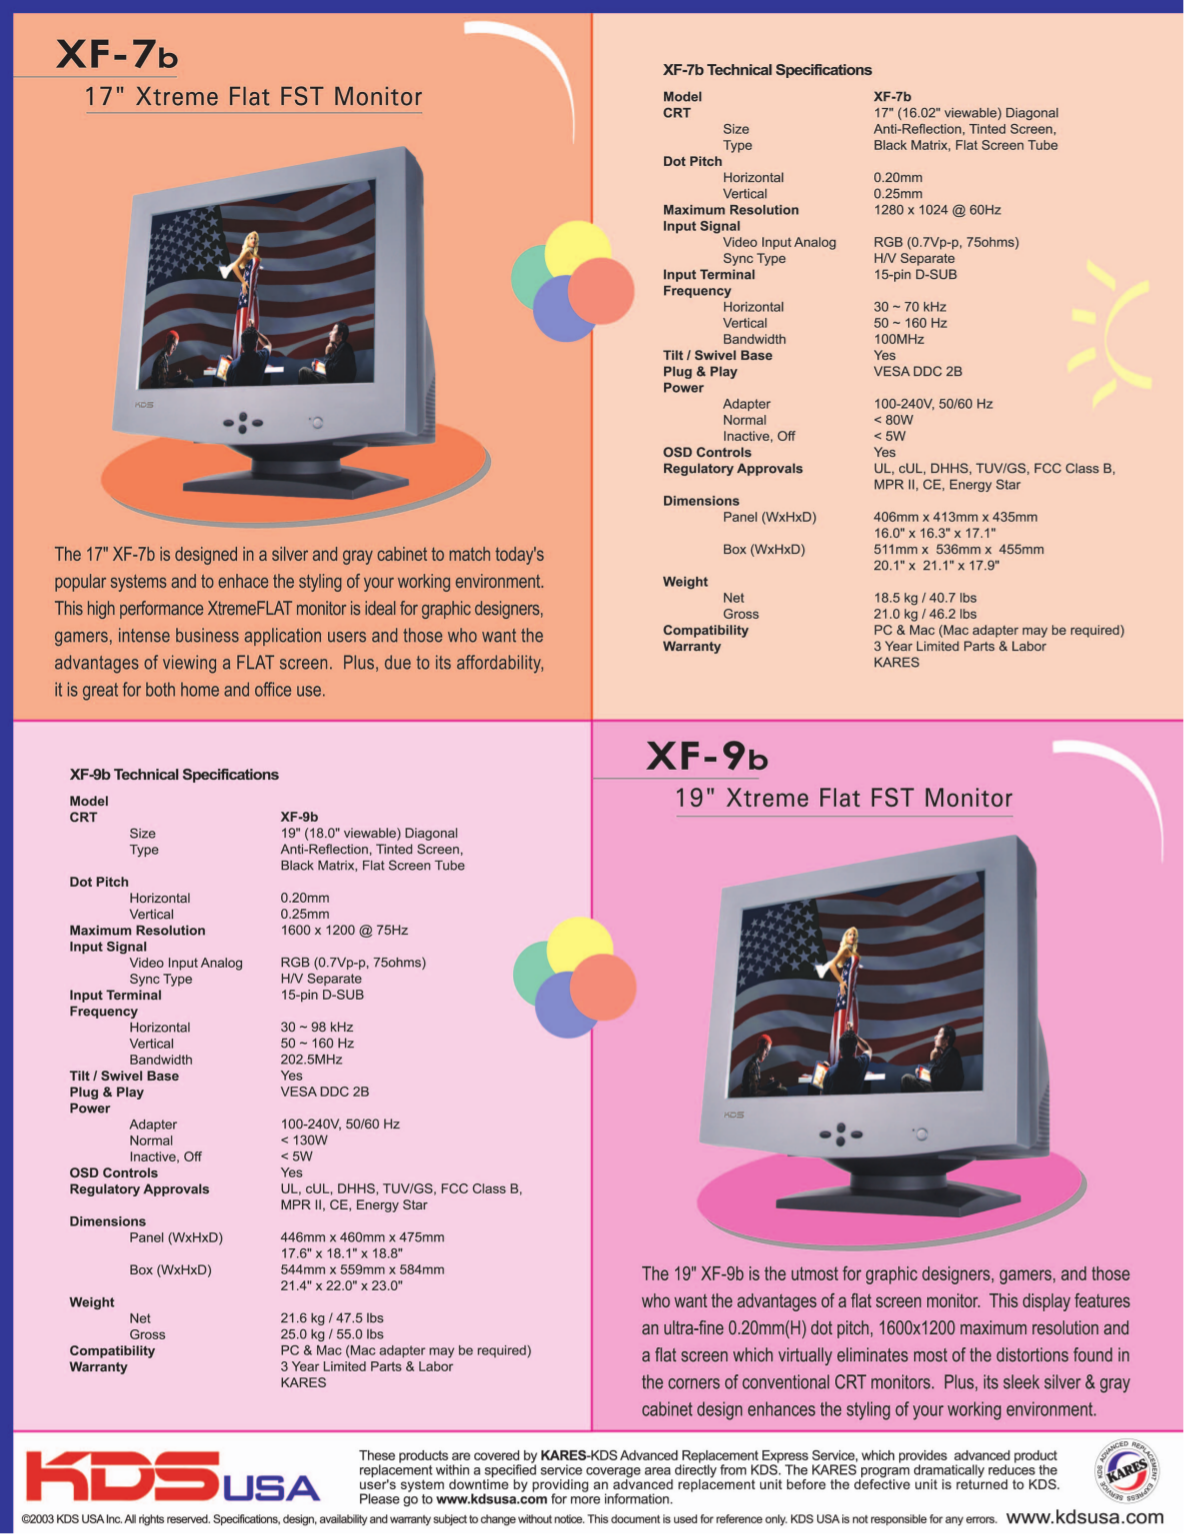 download free pdf for kds xtreme flat x7b monitor manual rh umlib com KDS Monitor Drivers KDS Monitor USB Cable